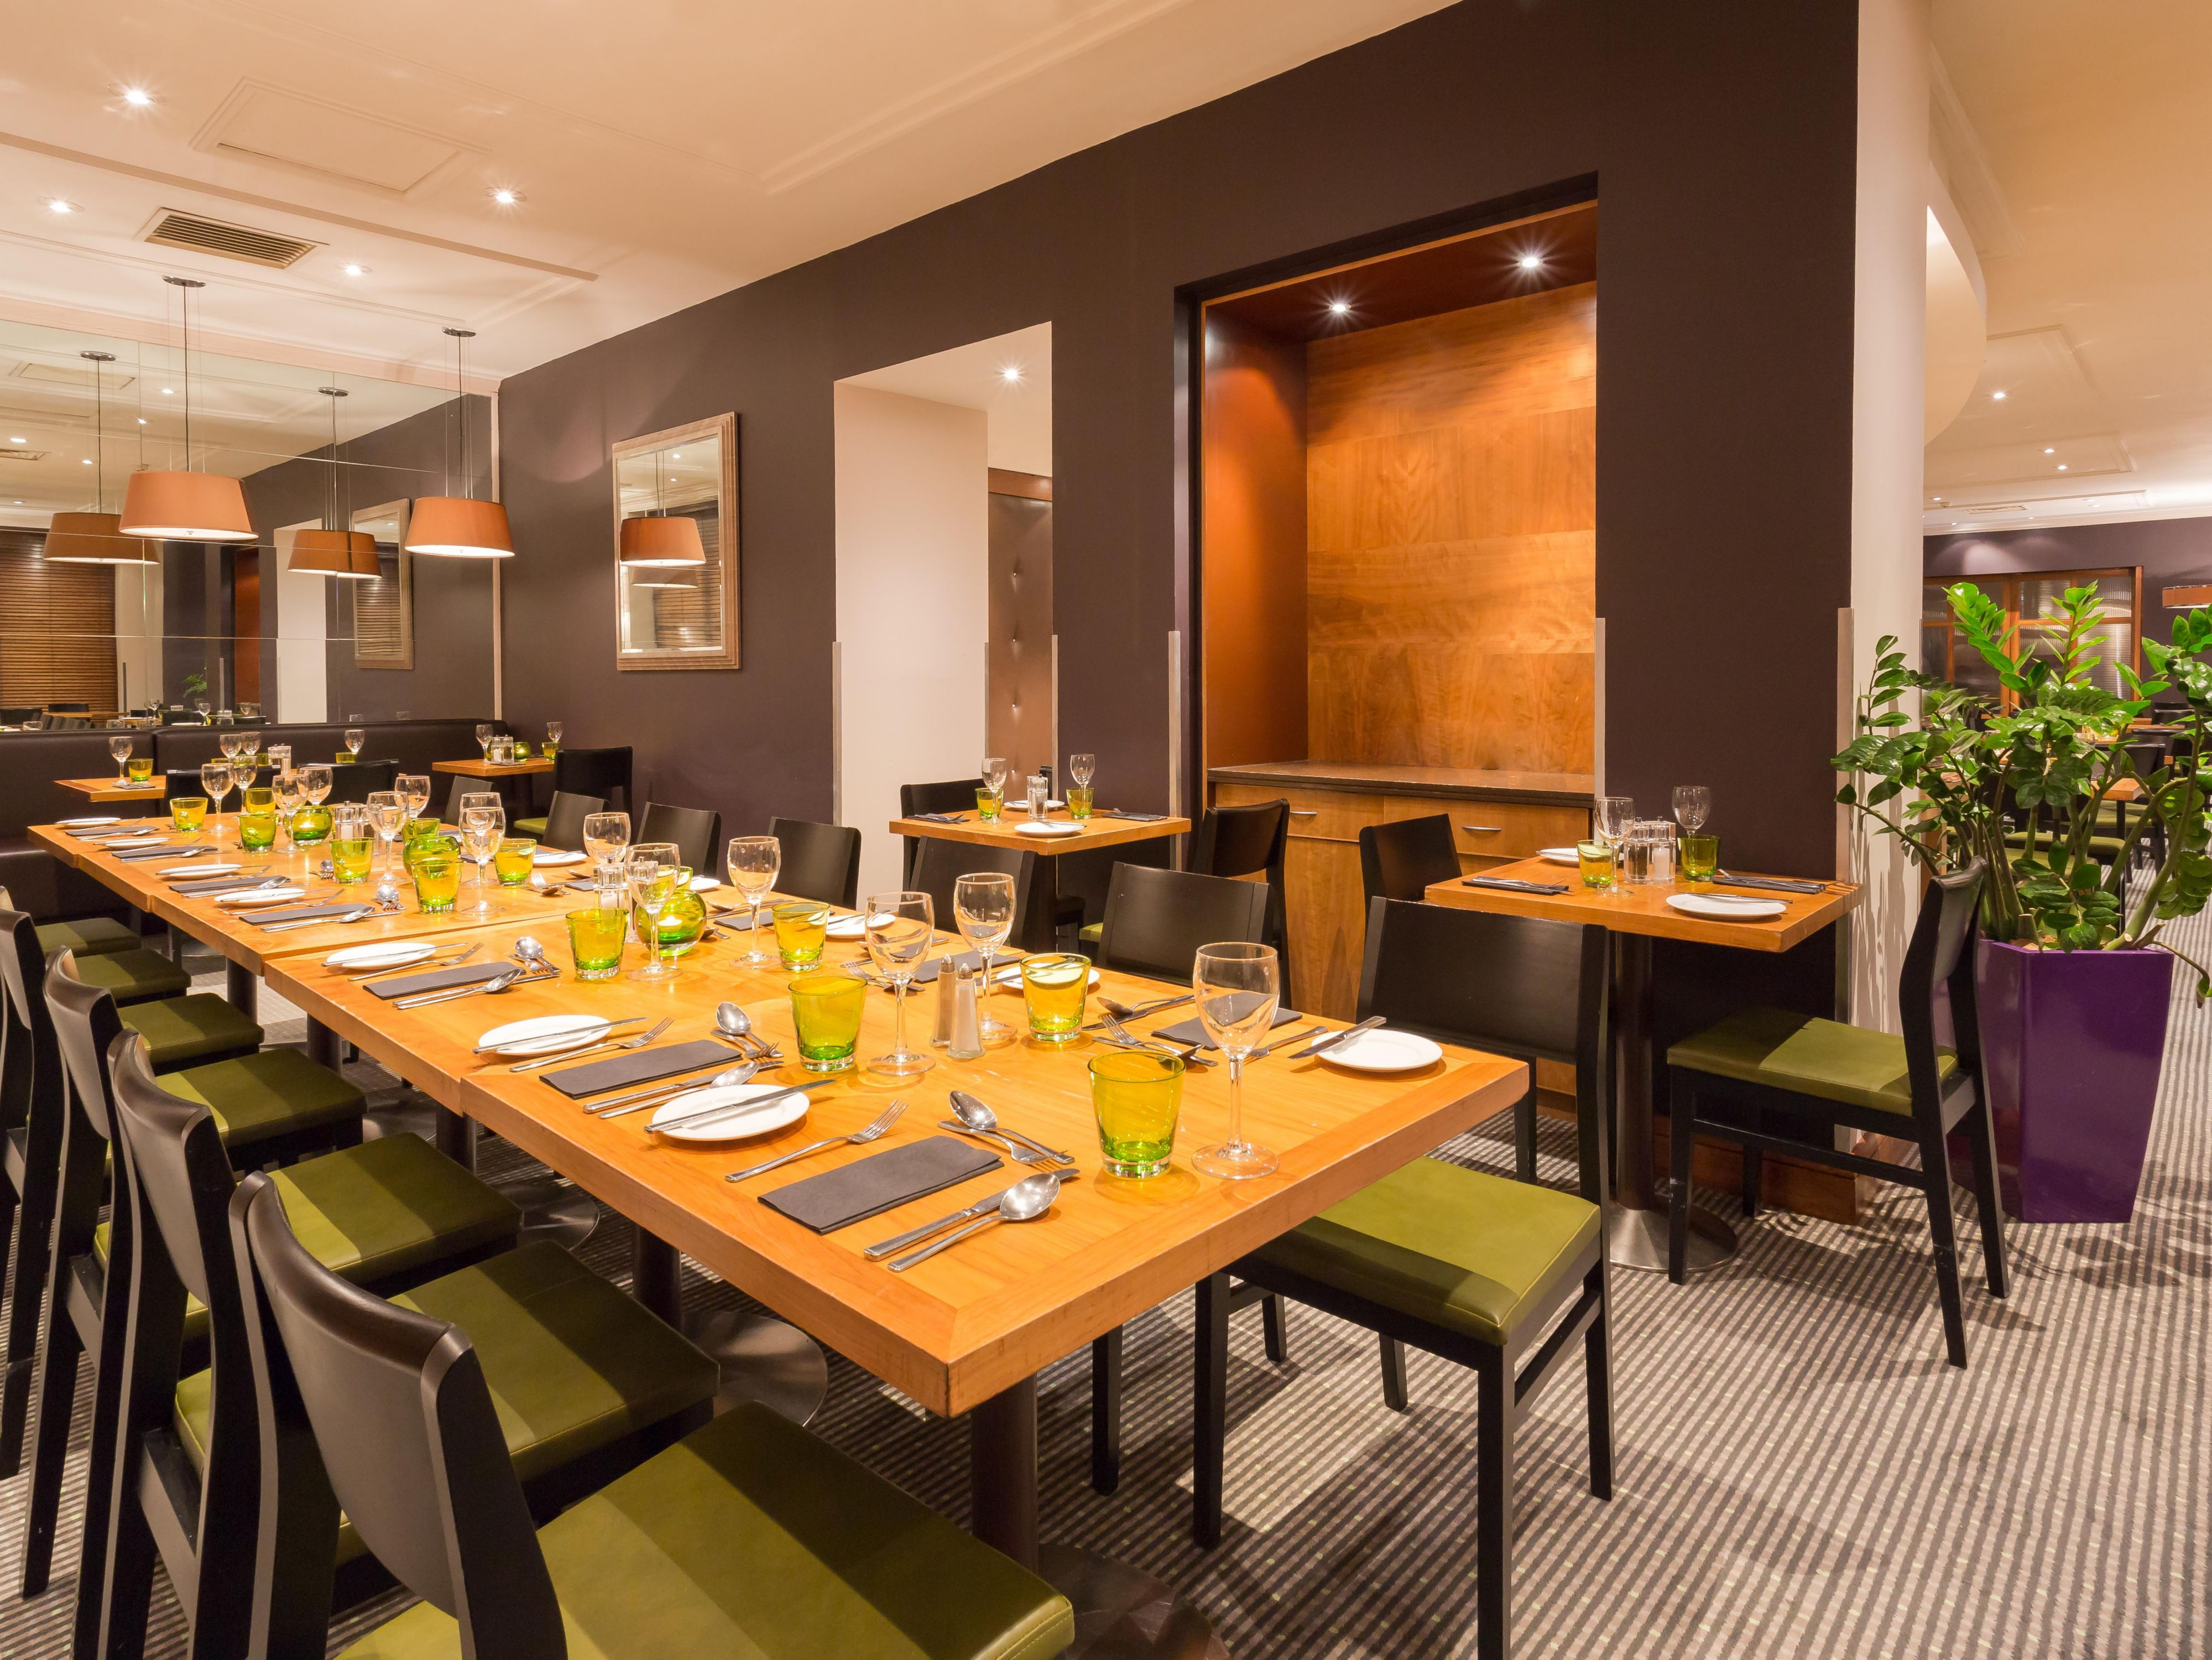 The Restaurant offers communal tables for your family dinners